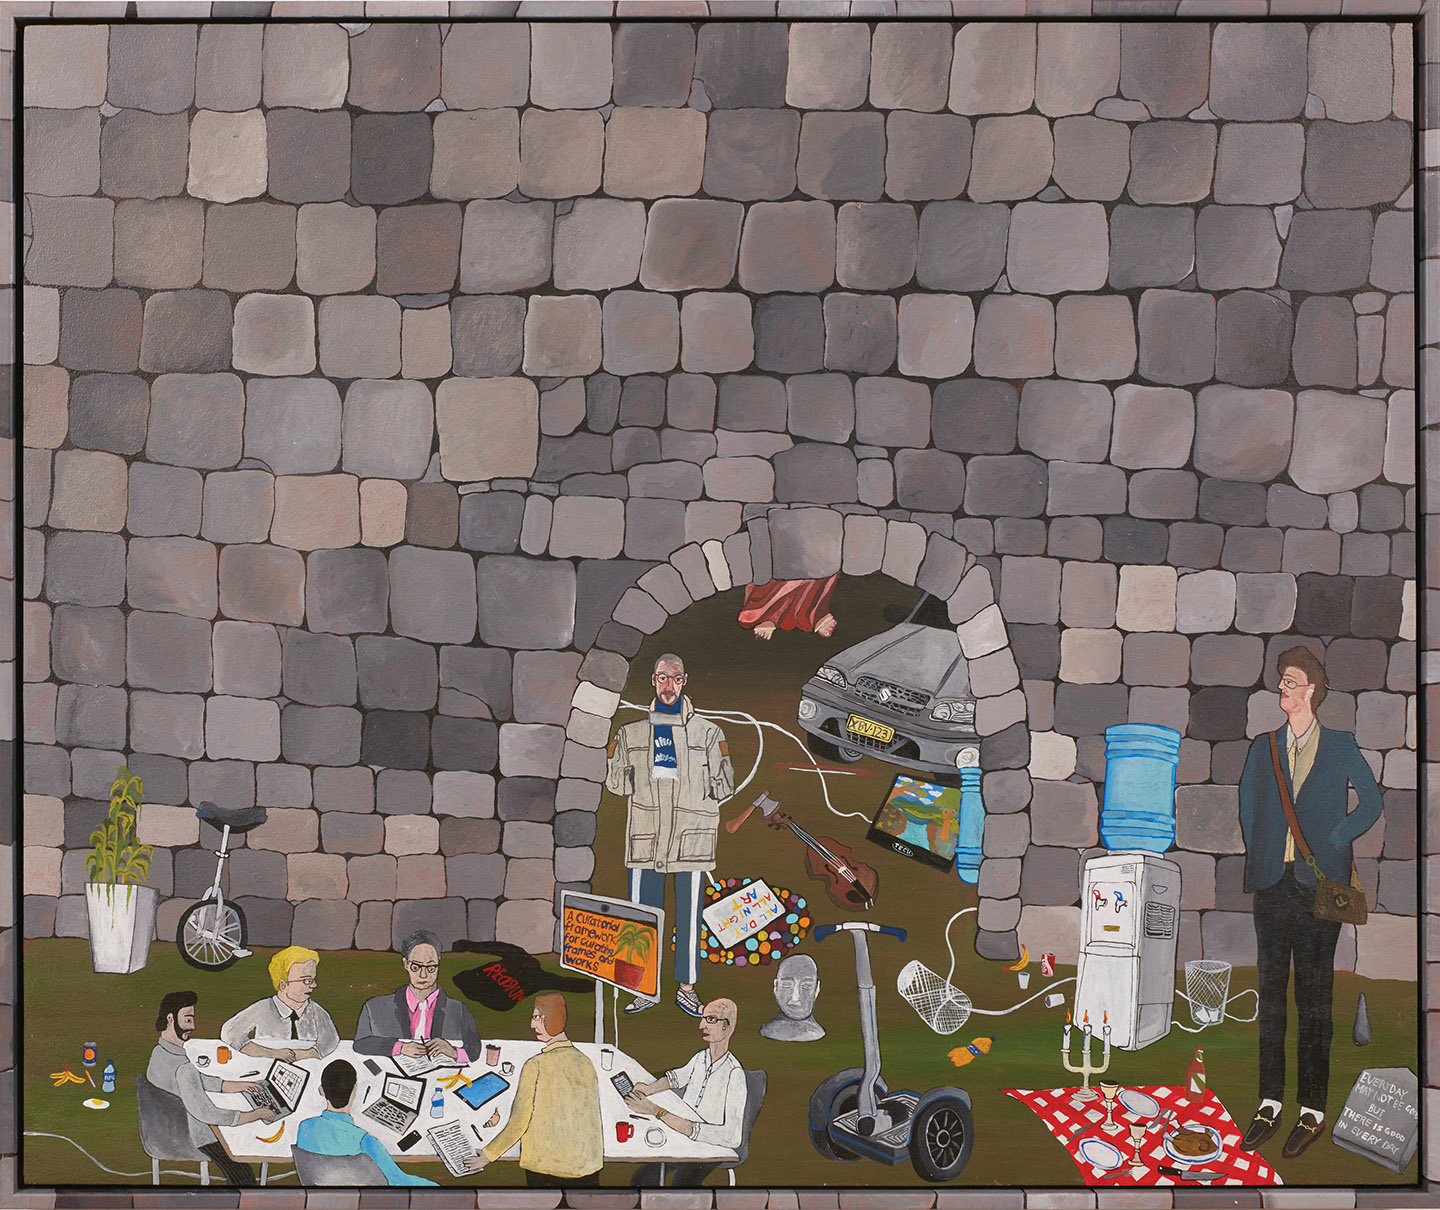 Board Meeting Outside the Castle on Your Hobby Farm  2019, acrylic on board with hand painted timber frame, 52 x 62 cm  SOLD